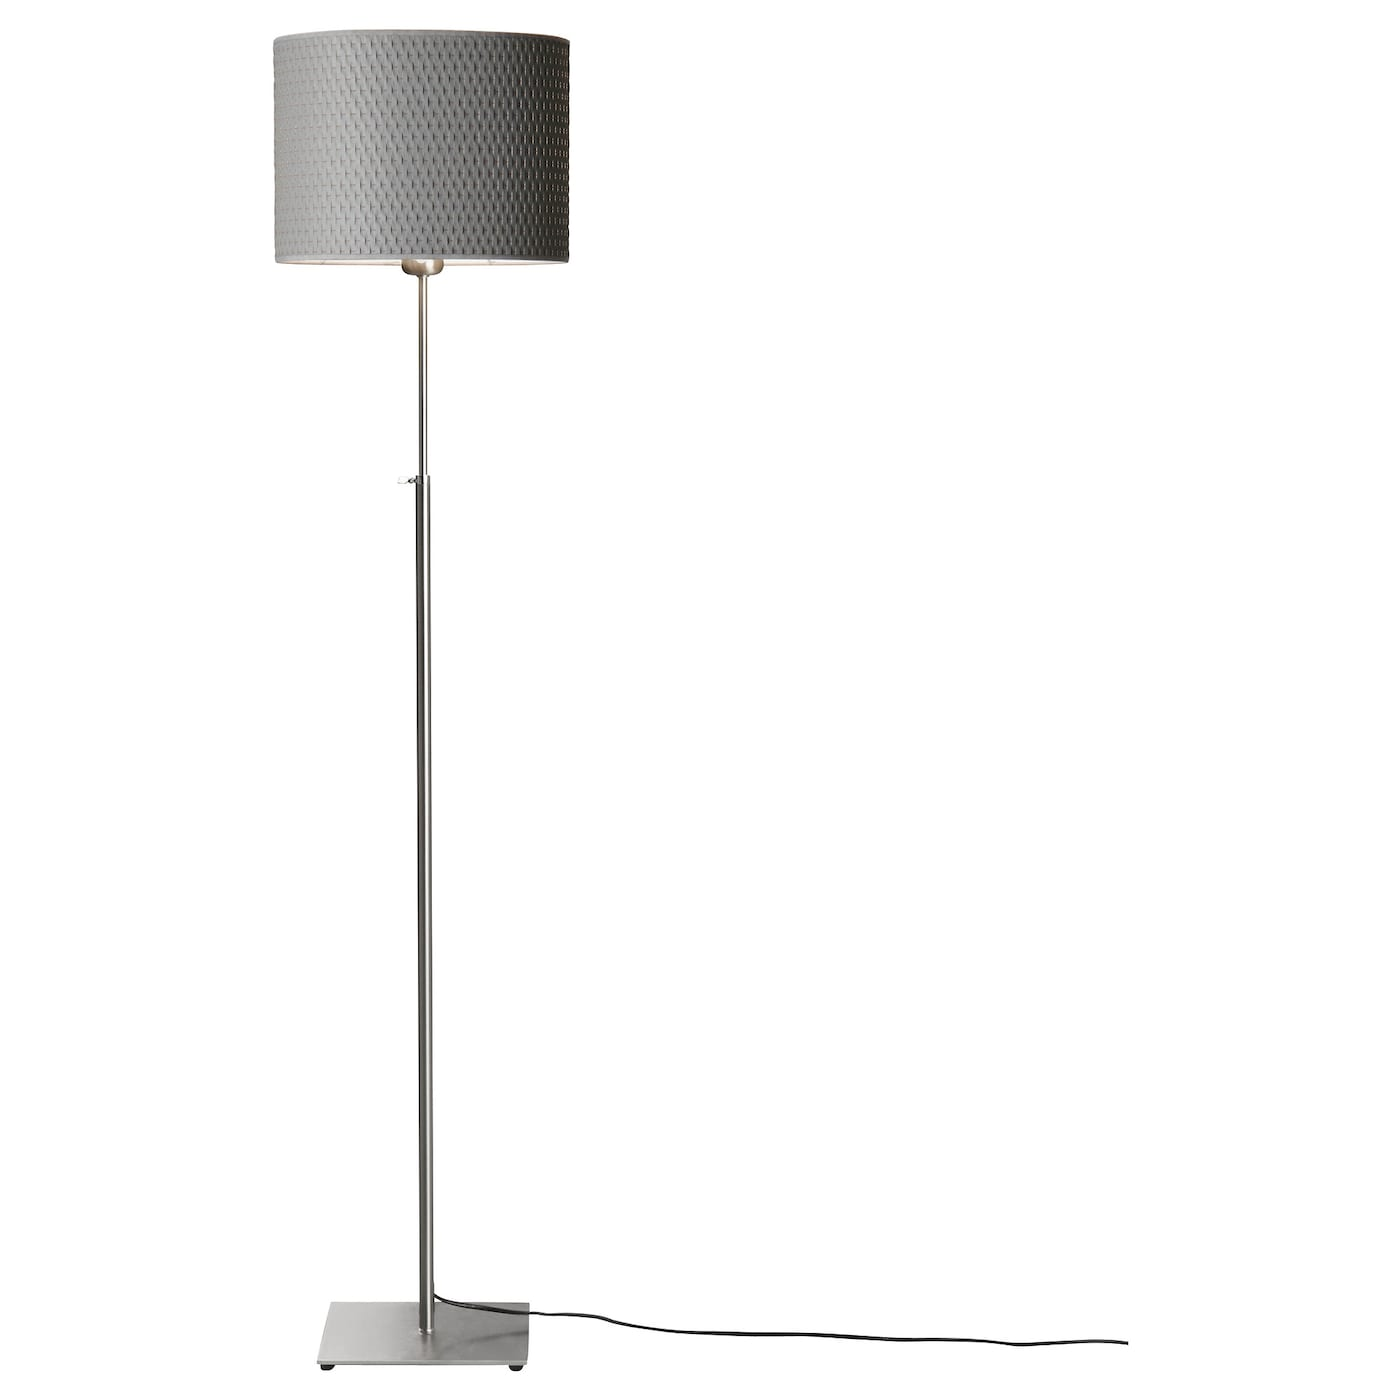 ALÄNG Floor lamp Nickel-plated/grey - IKEA